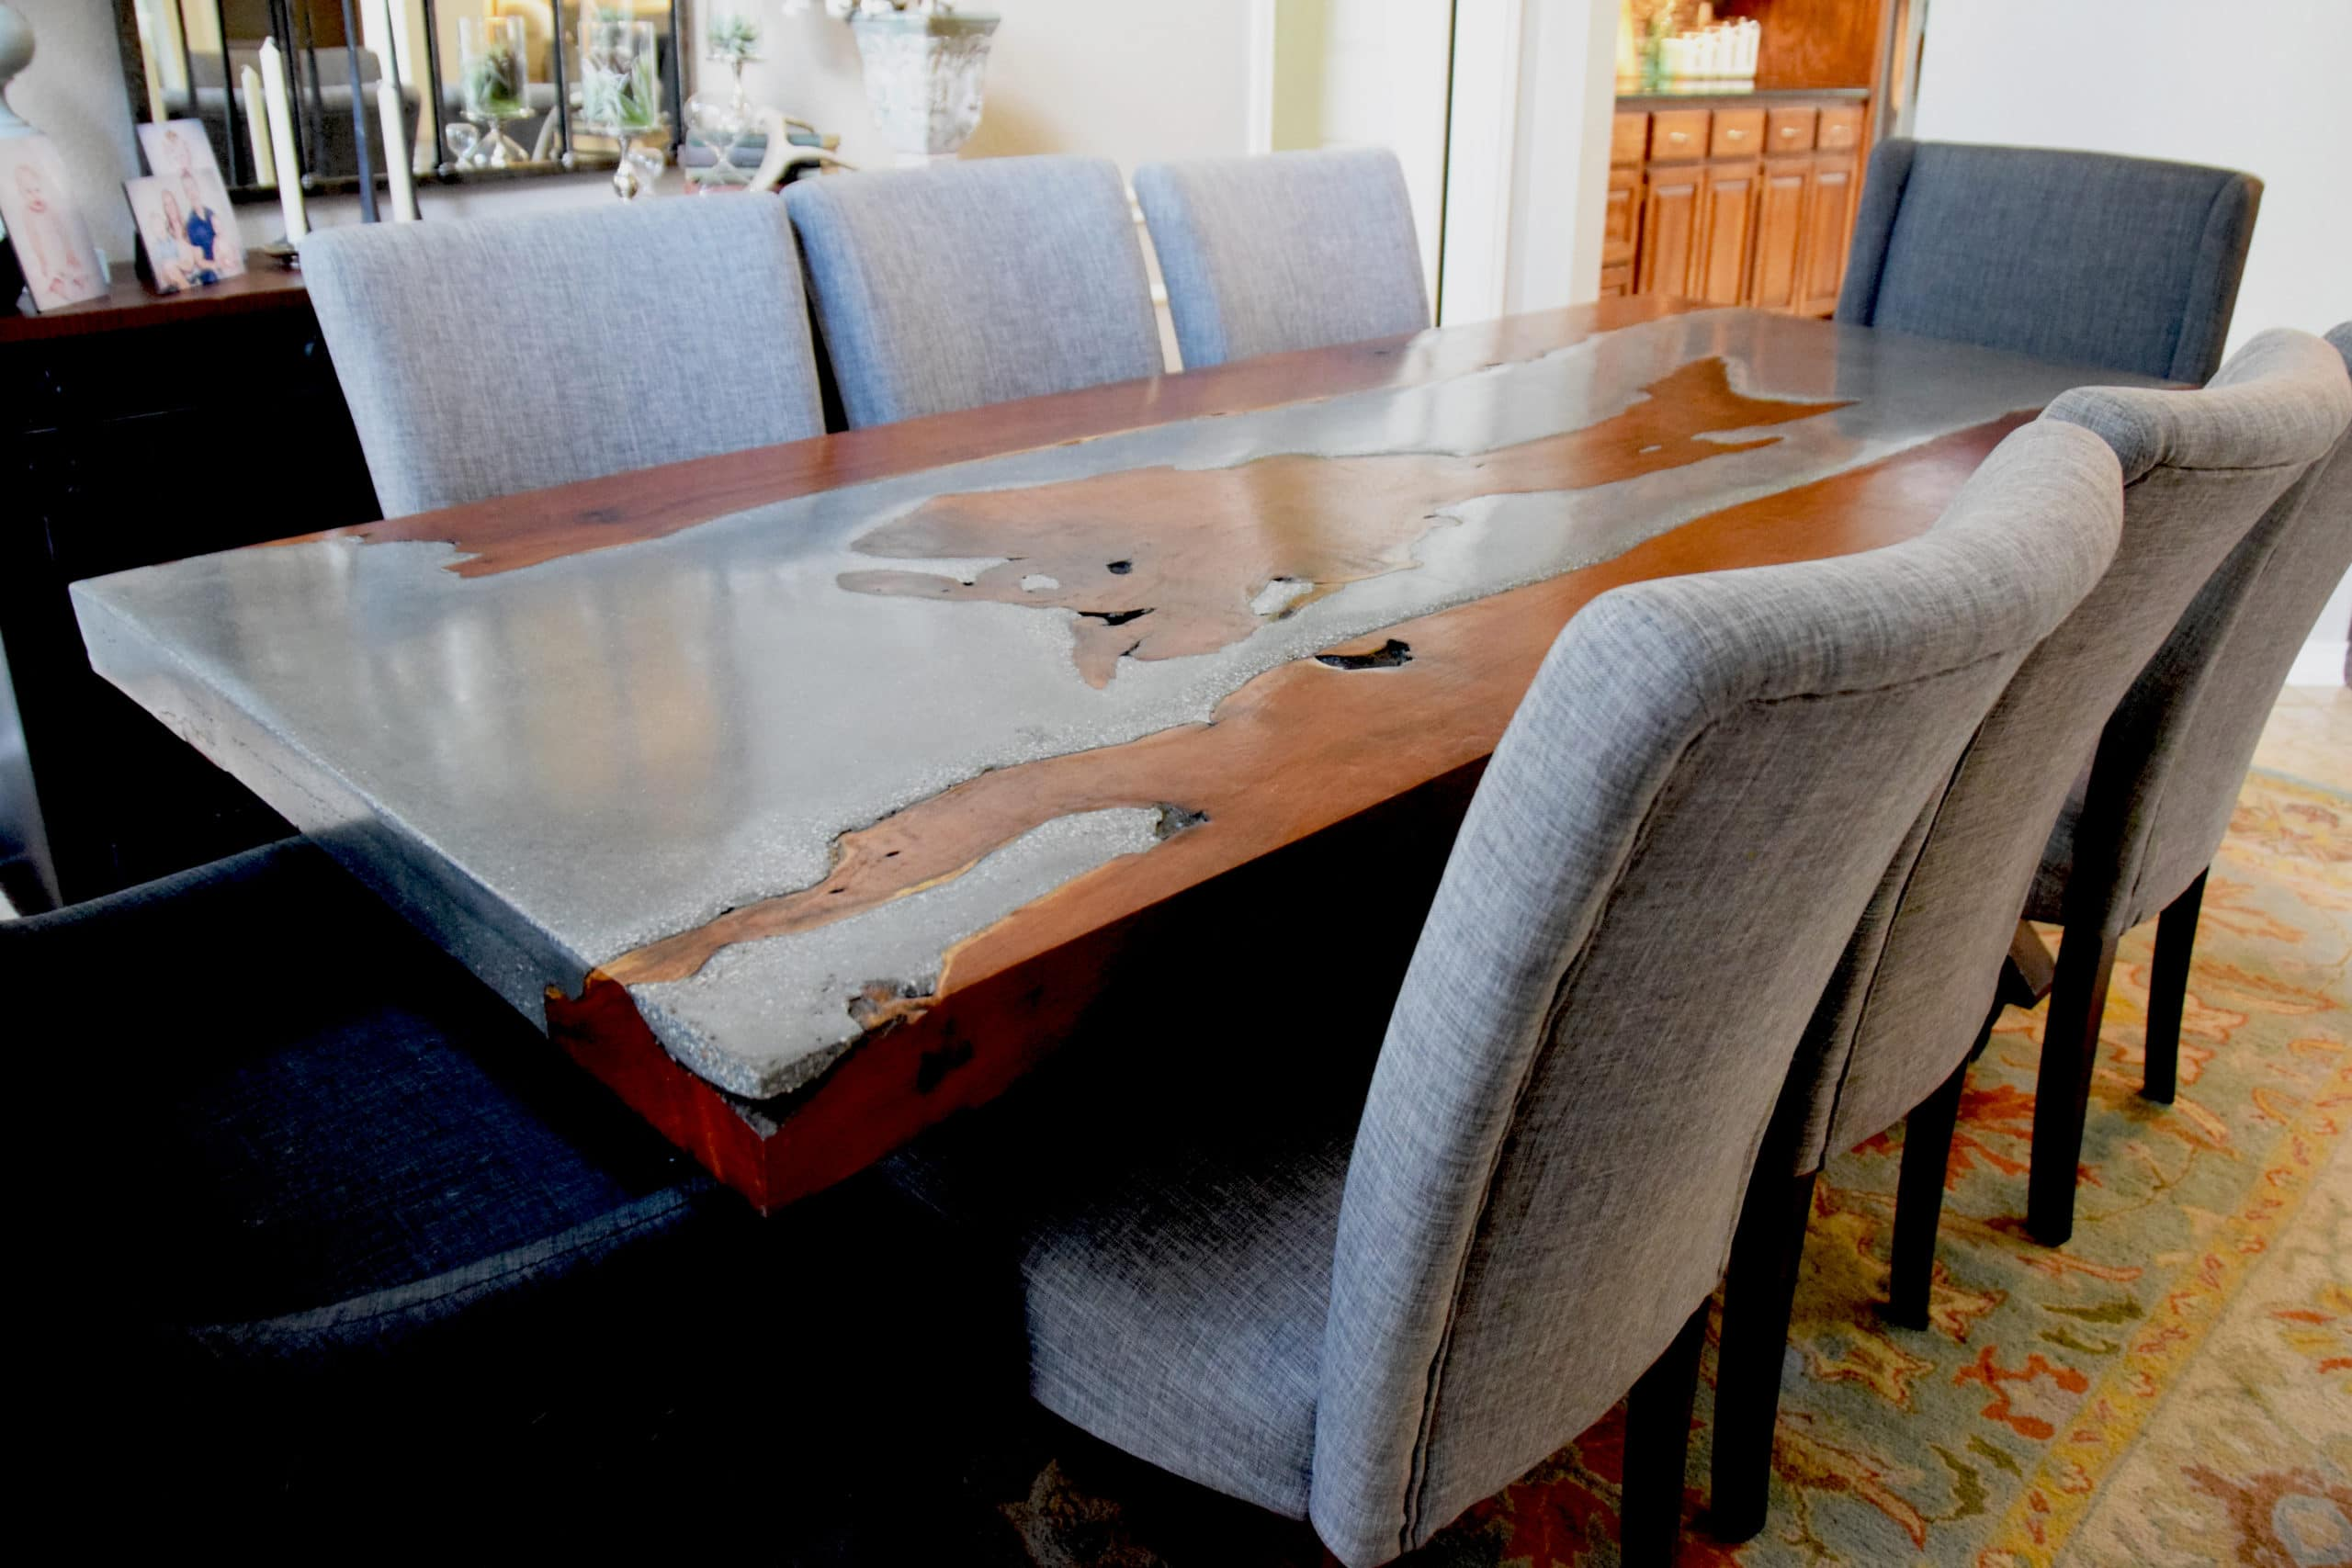 wide angle view of concrete and wood table